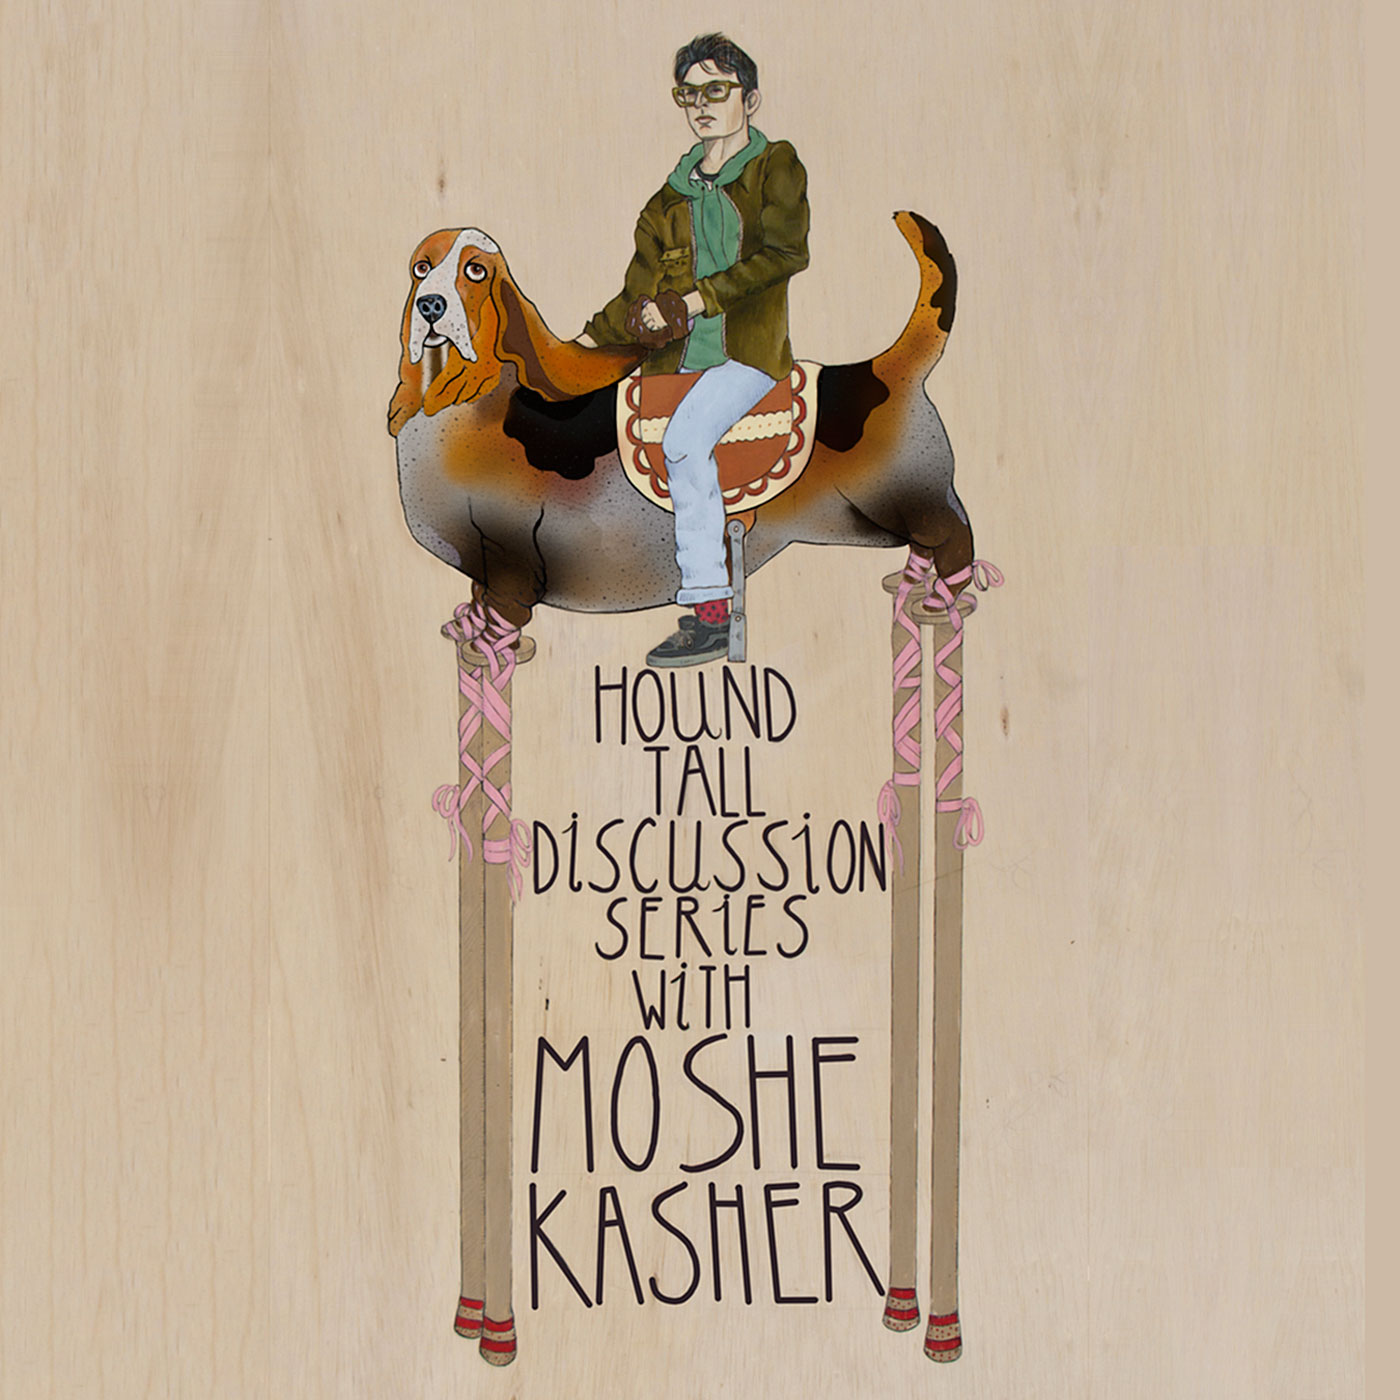 Hound Tall with Moshe Kasher  show art